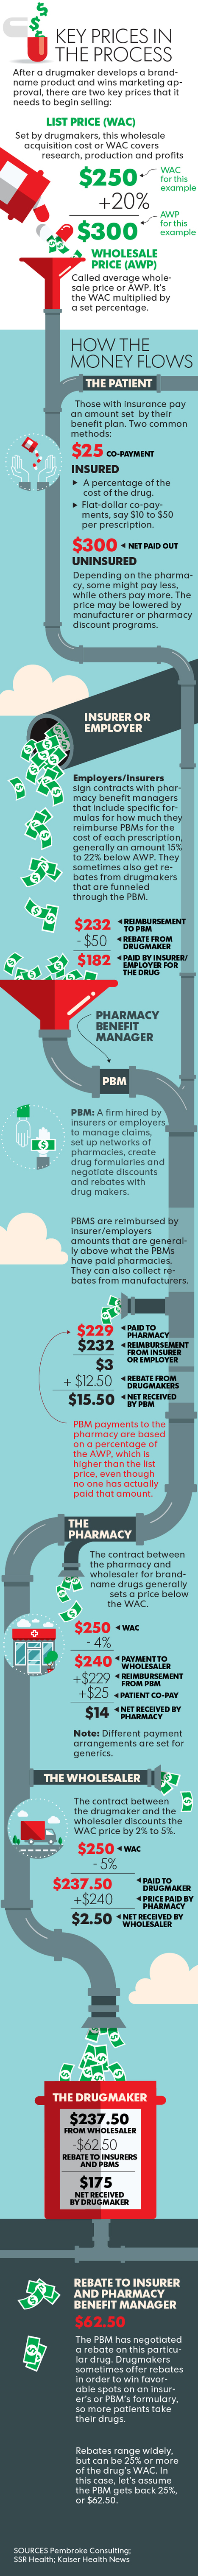 Pipeline To Profits: How Drug Middlemen Make Their Money | Apropos health care | Scoop.it